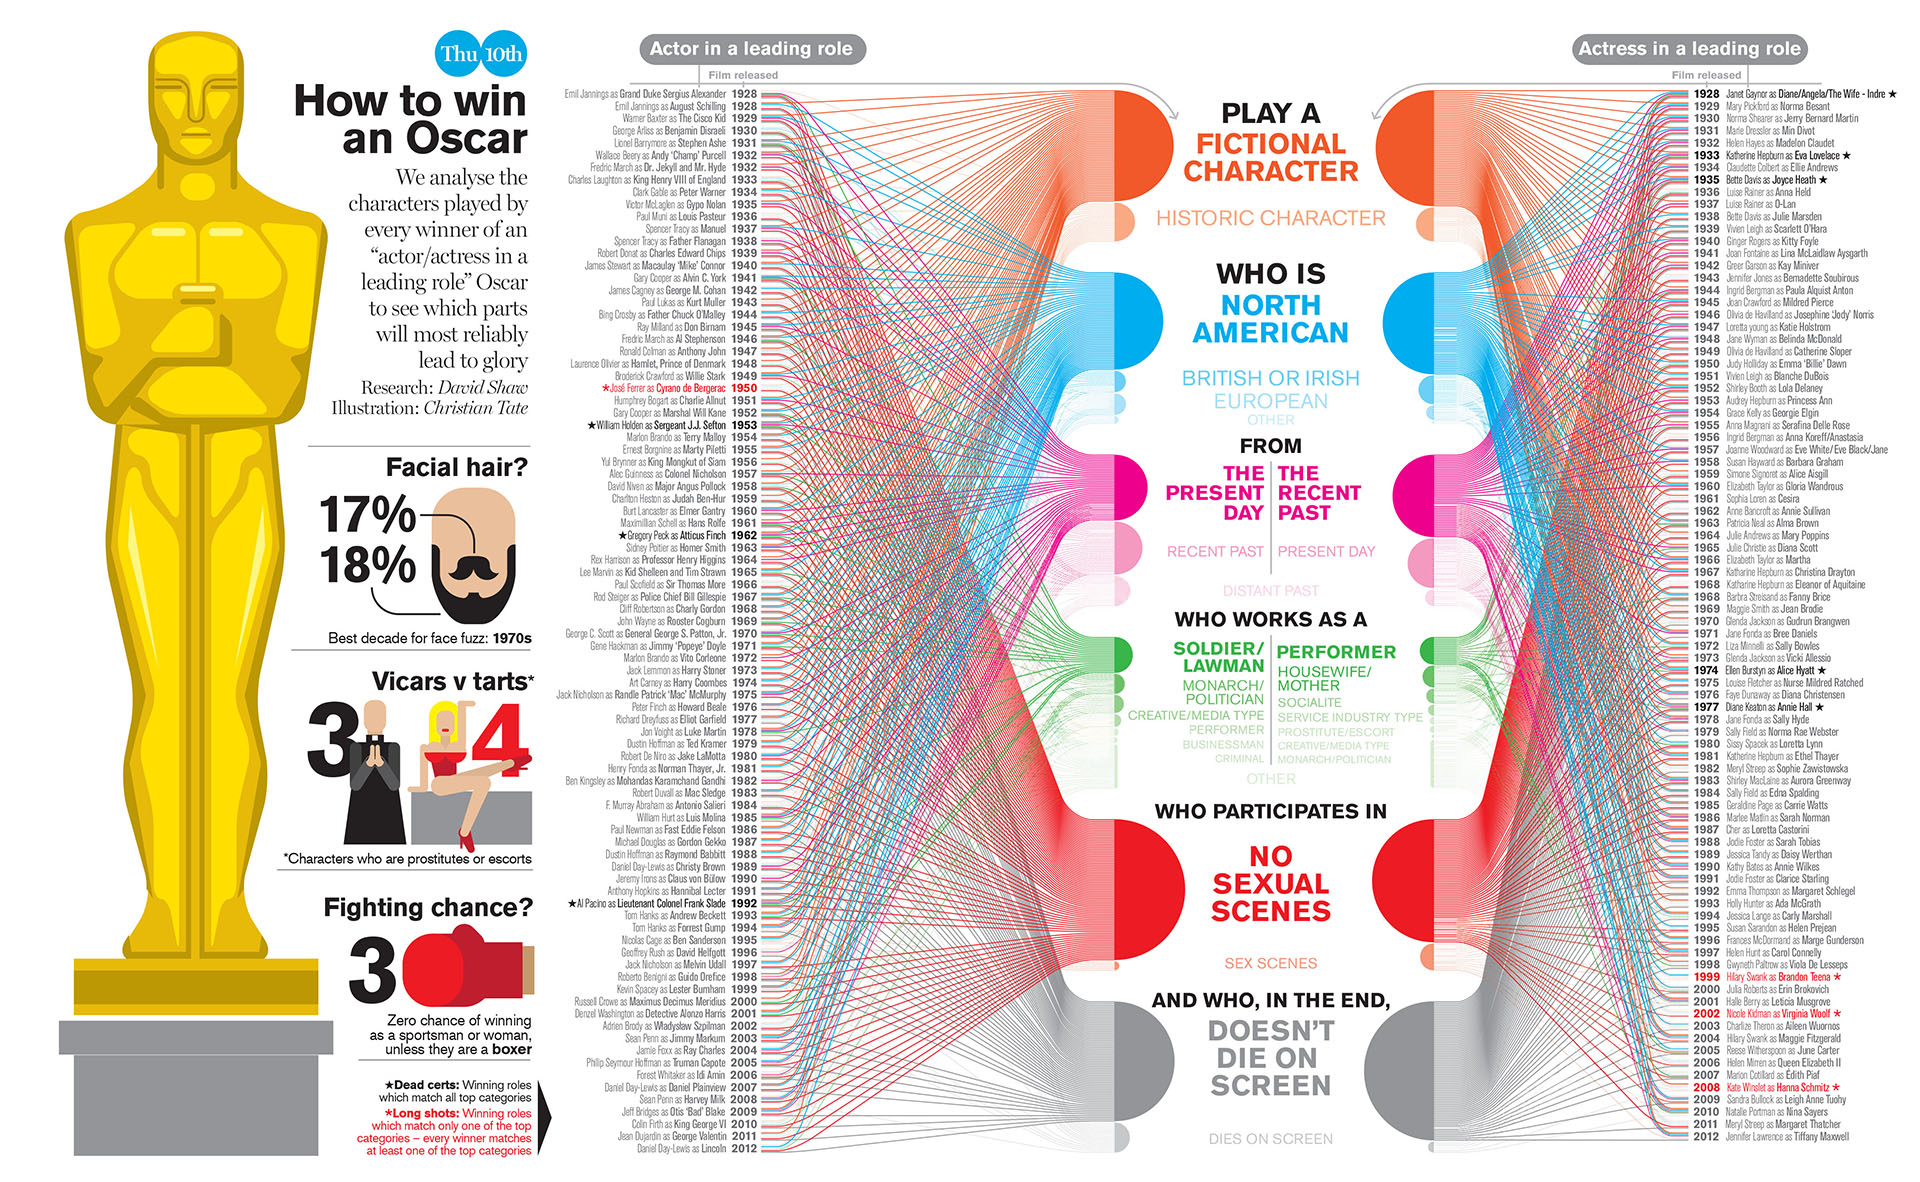 http://www.coolinfographics.nl/infographics/2018/2018-085-oscars-infographic-3.jpg